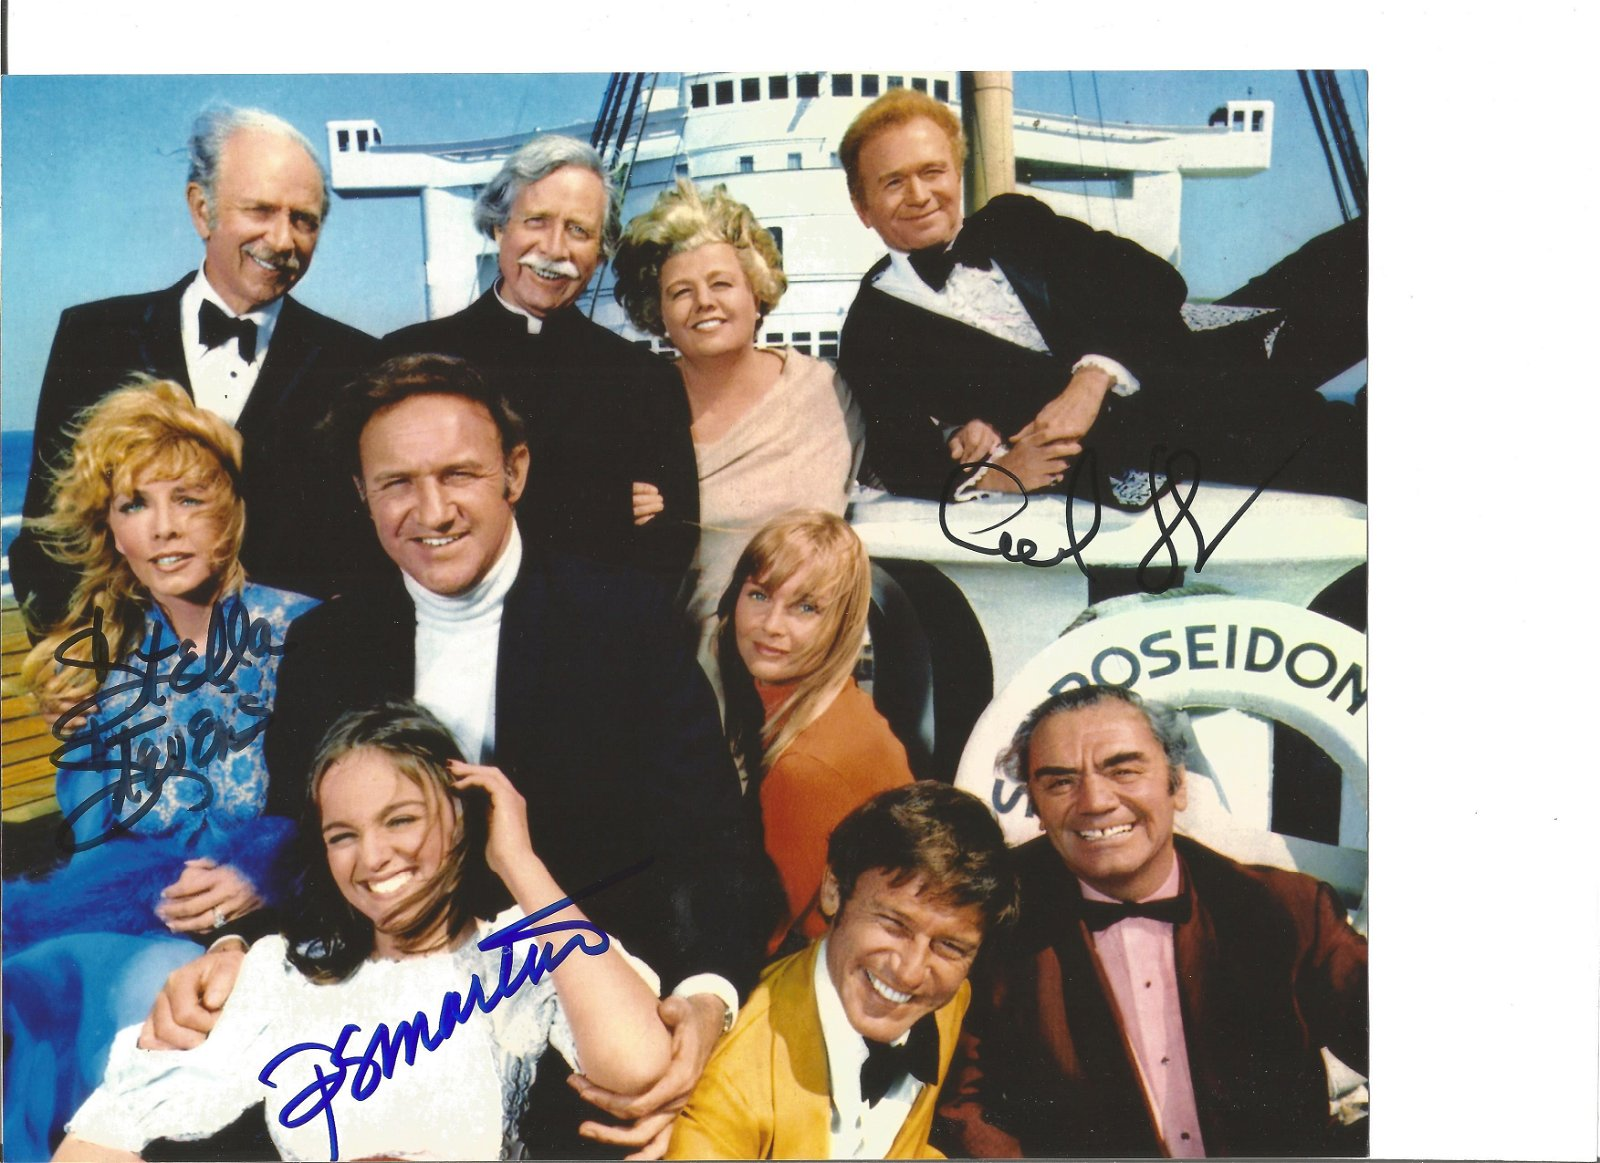 Poseidon Adventure signed 10x8 colour photo. Signed by